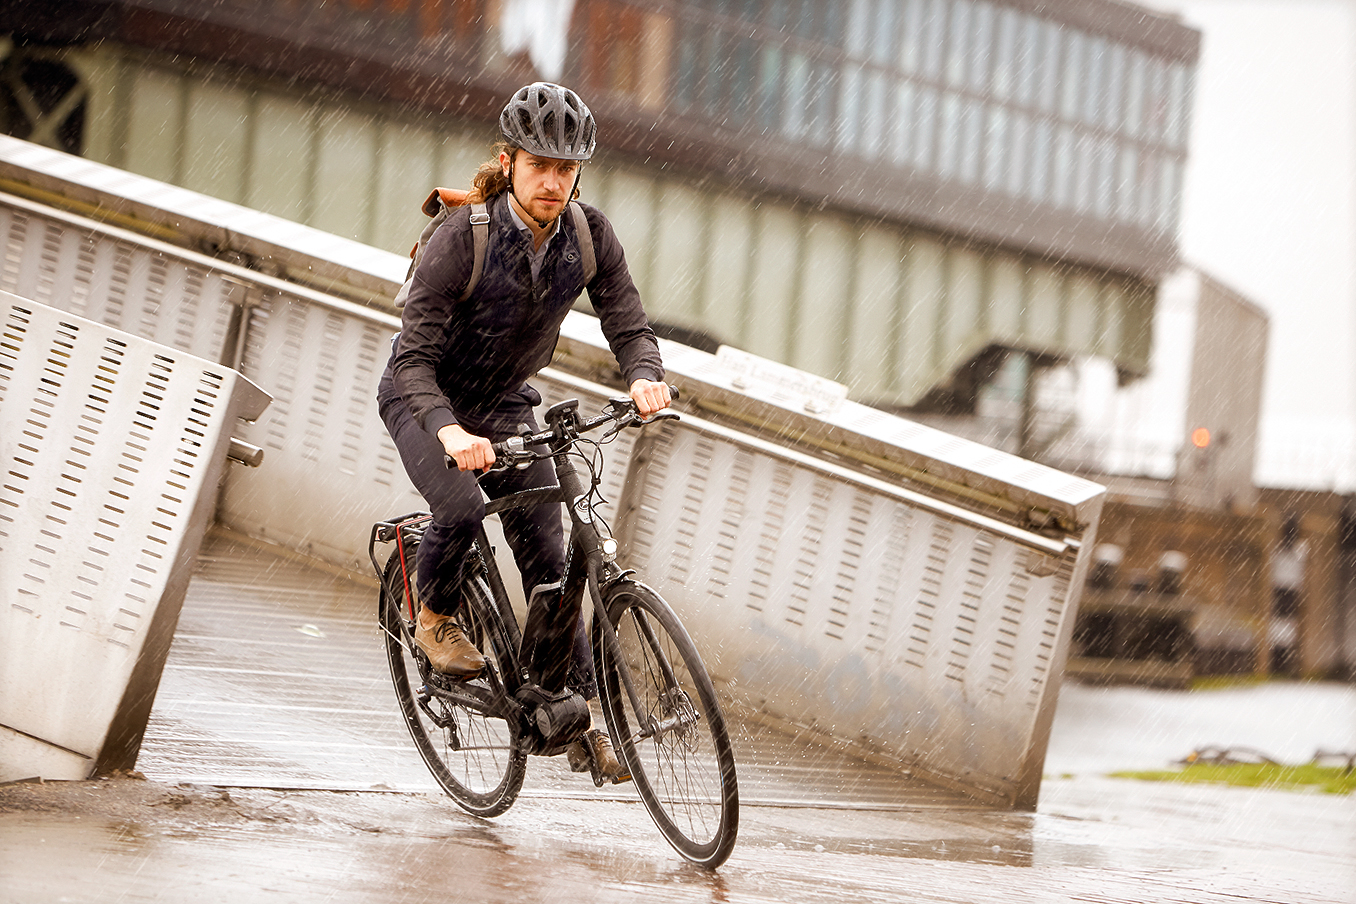 Your choice of an e-bike depends not only on your personal preferences and budget, how you will be using the bike is also an important factor.